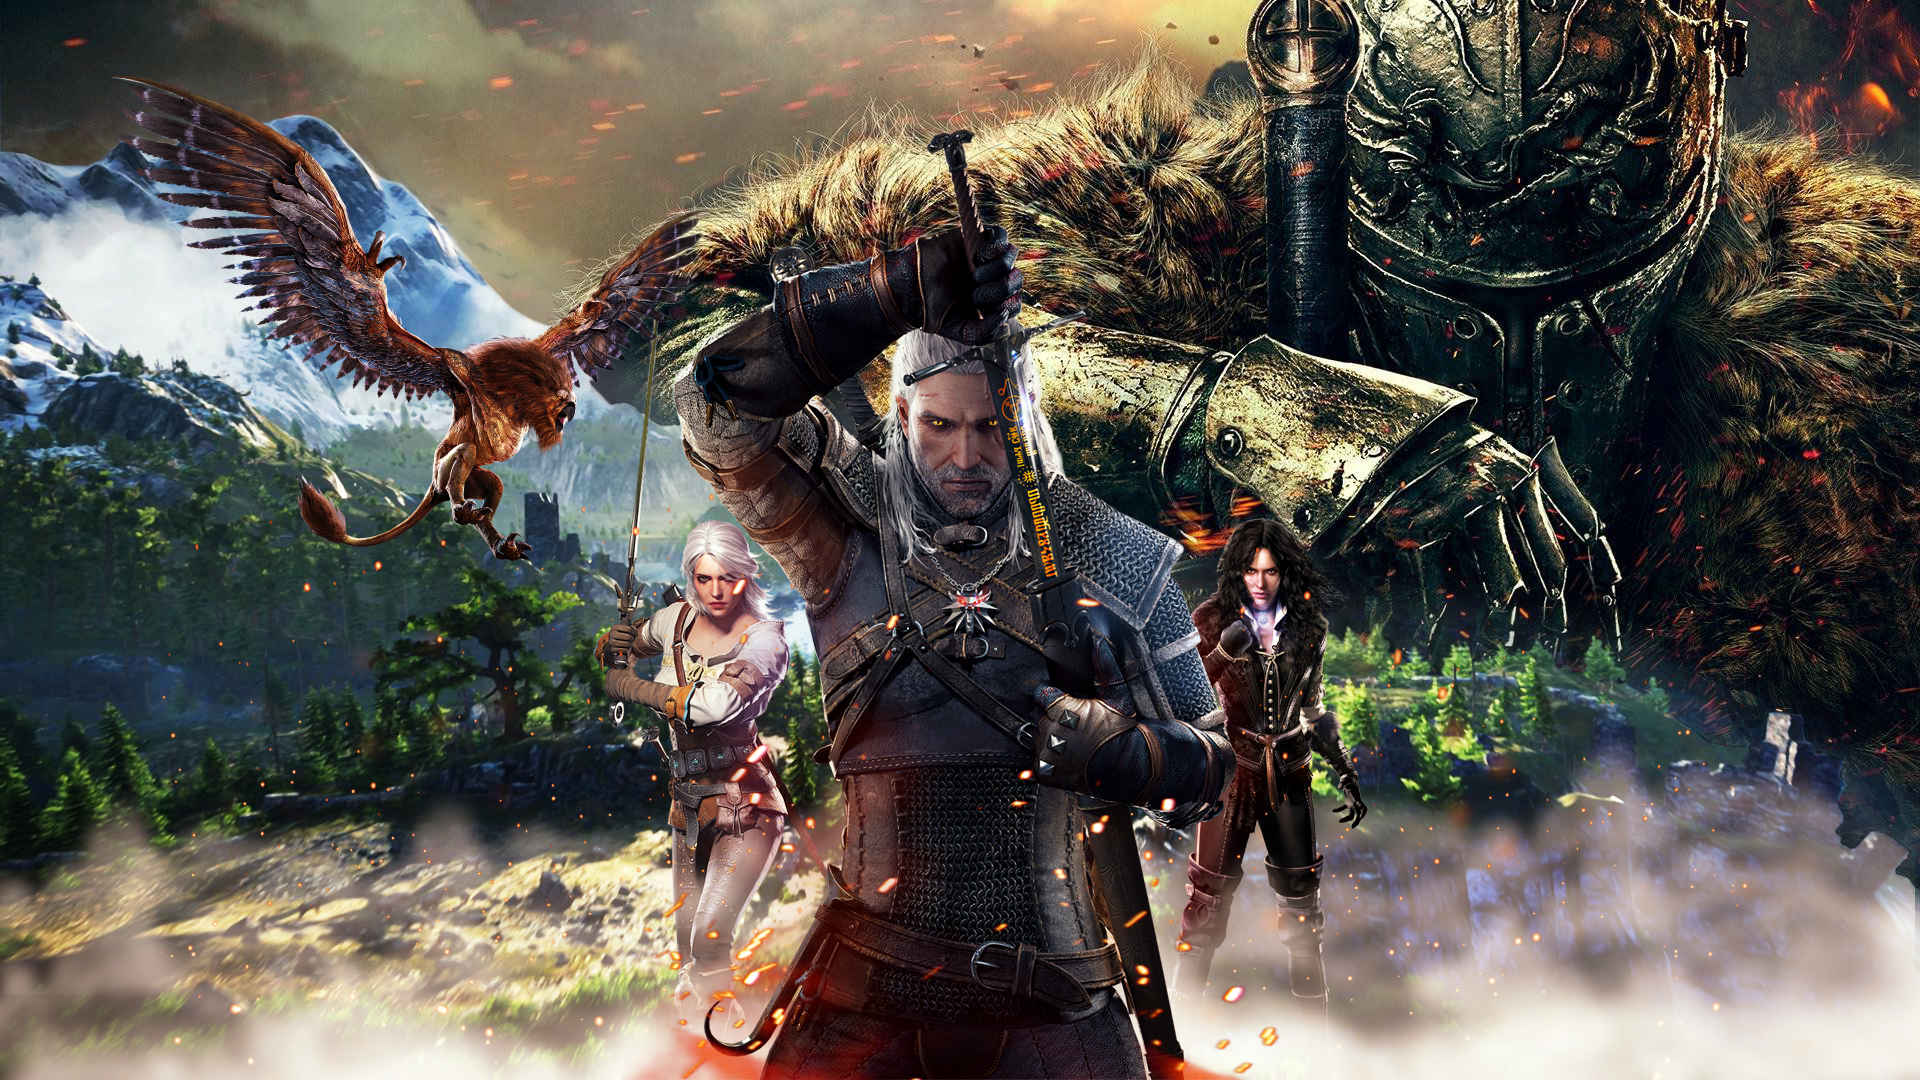 For the select few who love The Witcher 3 and Darksouls 3